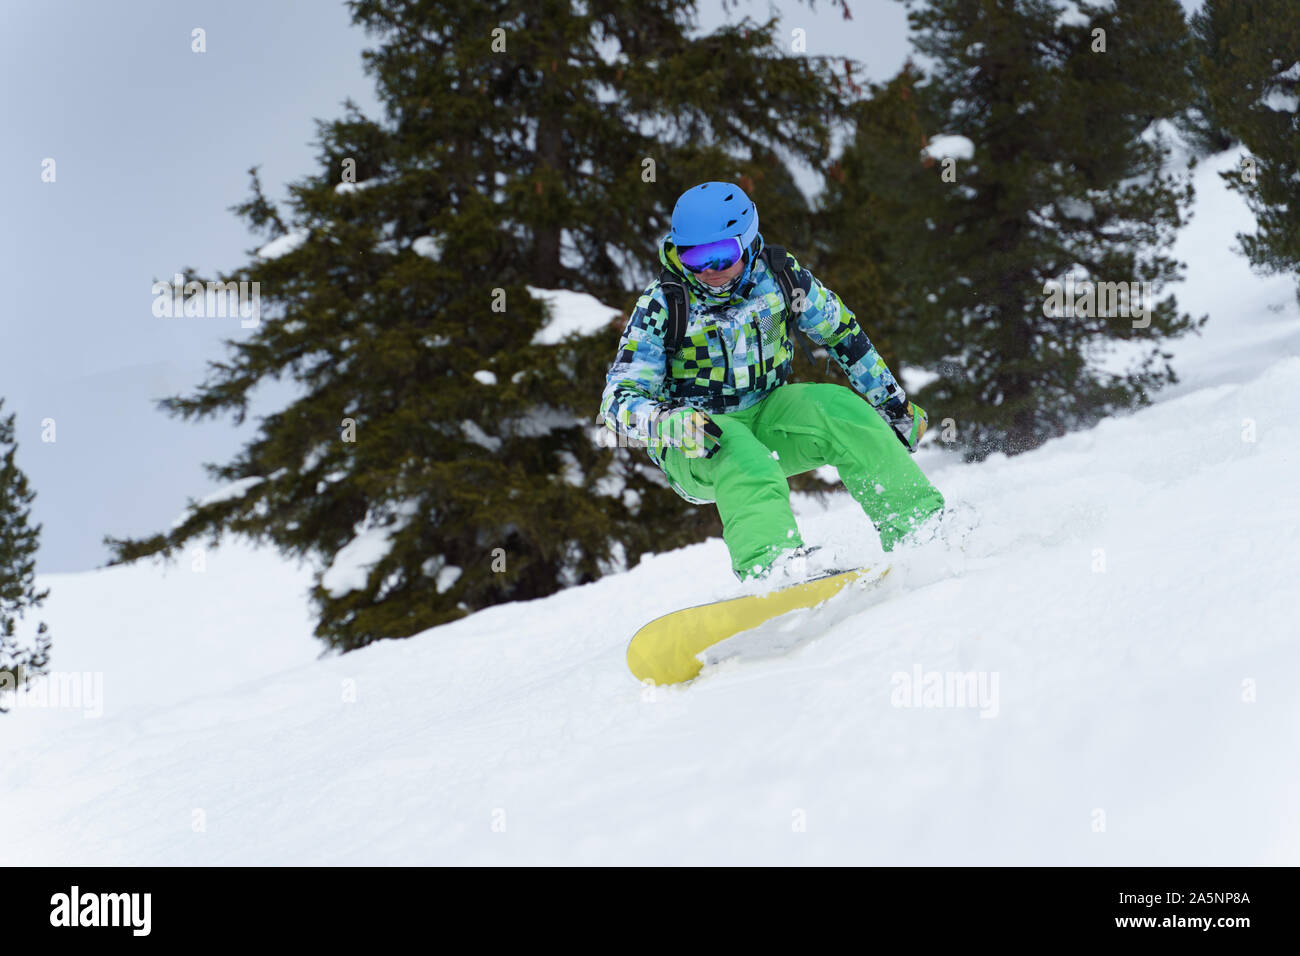 Male snowboarder riding on mountainside on background of trees in afternoon Stock Photo